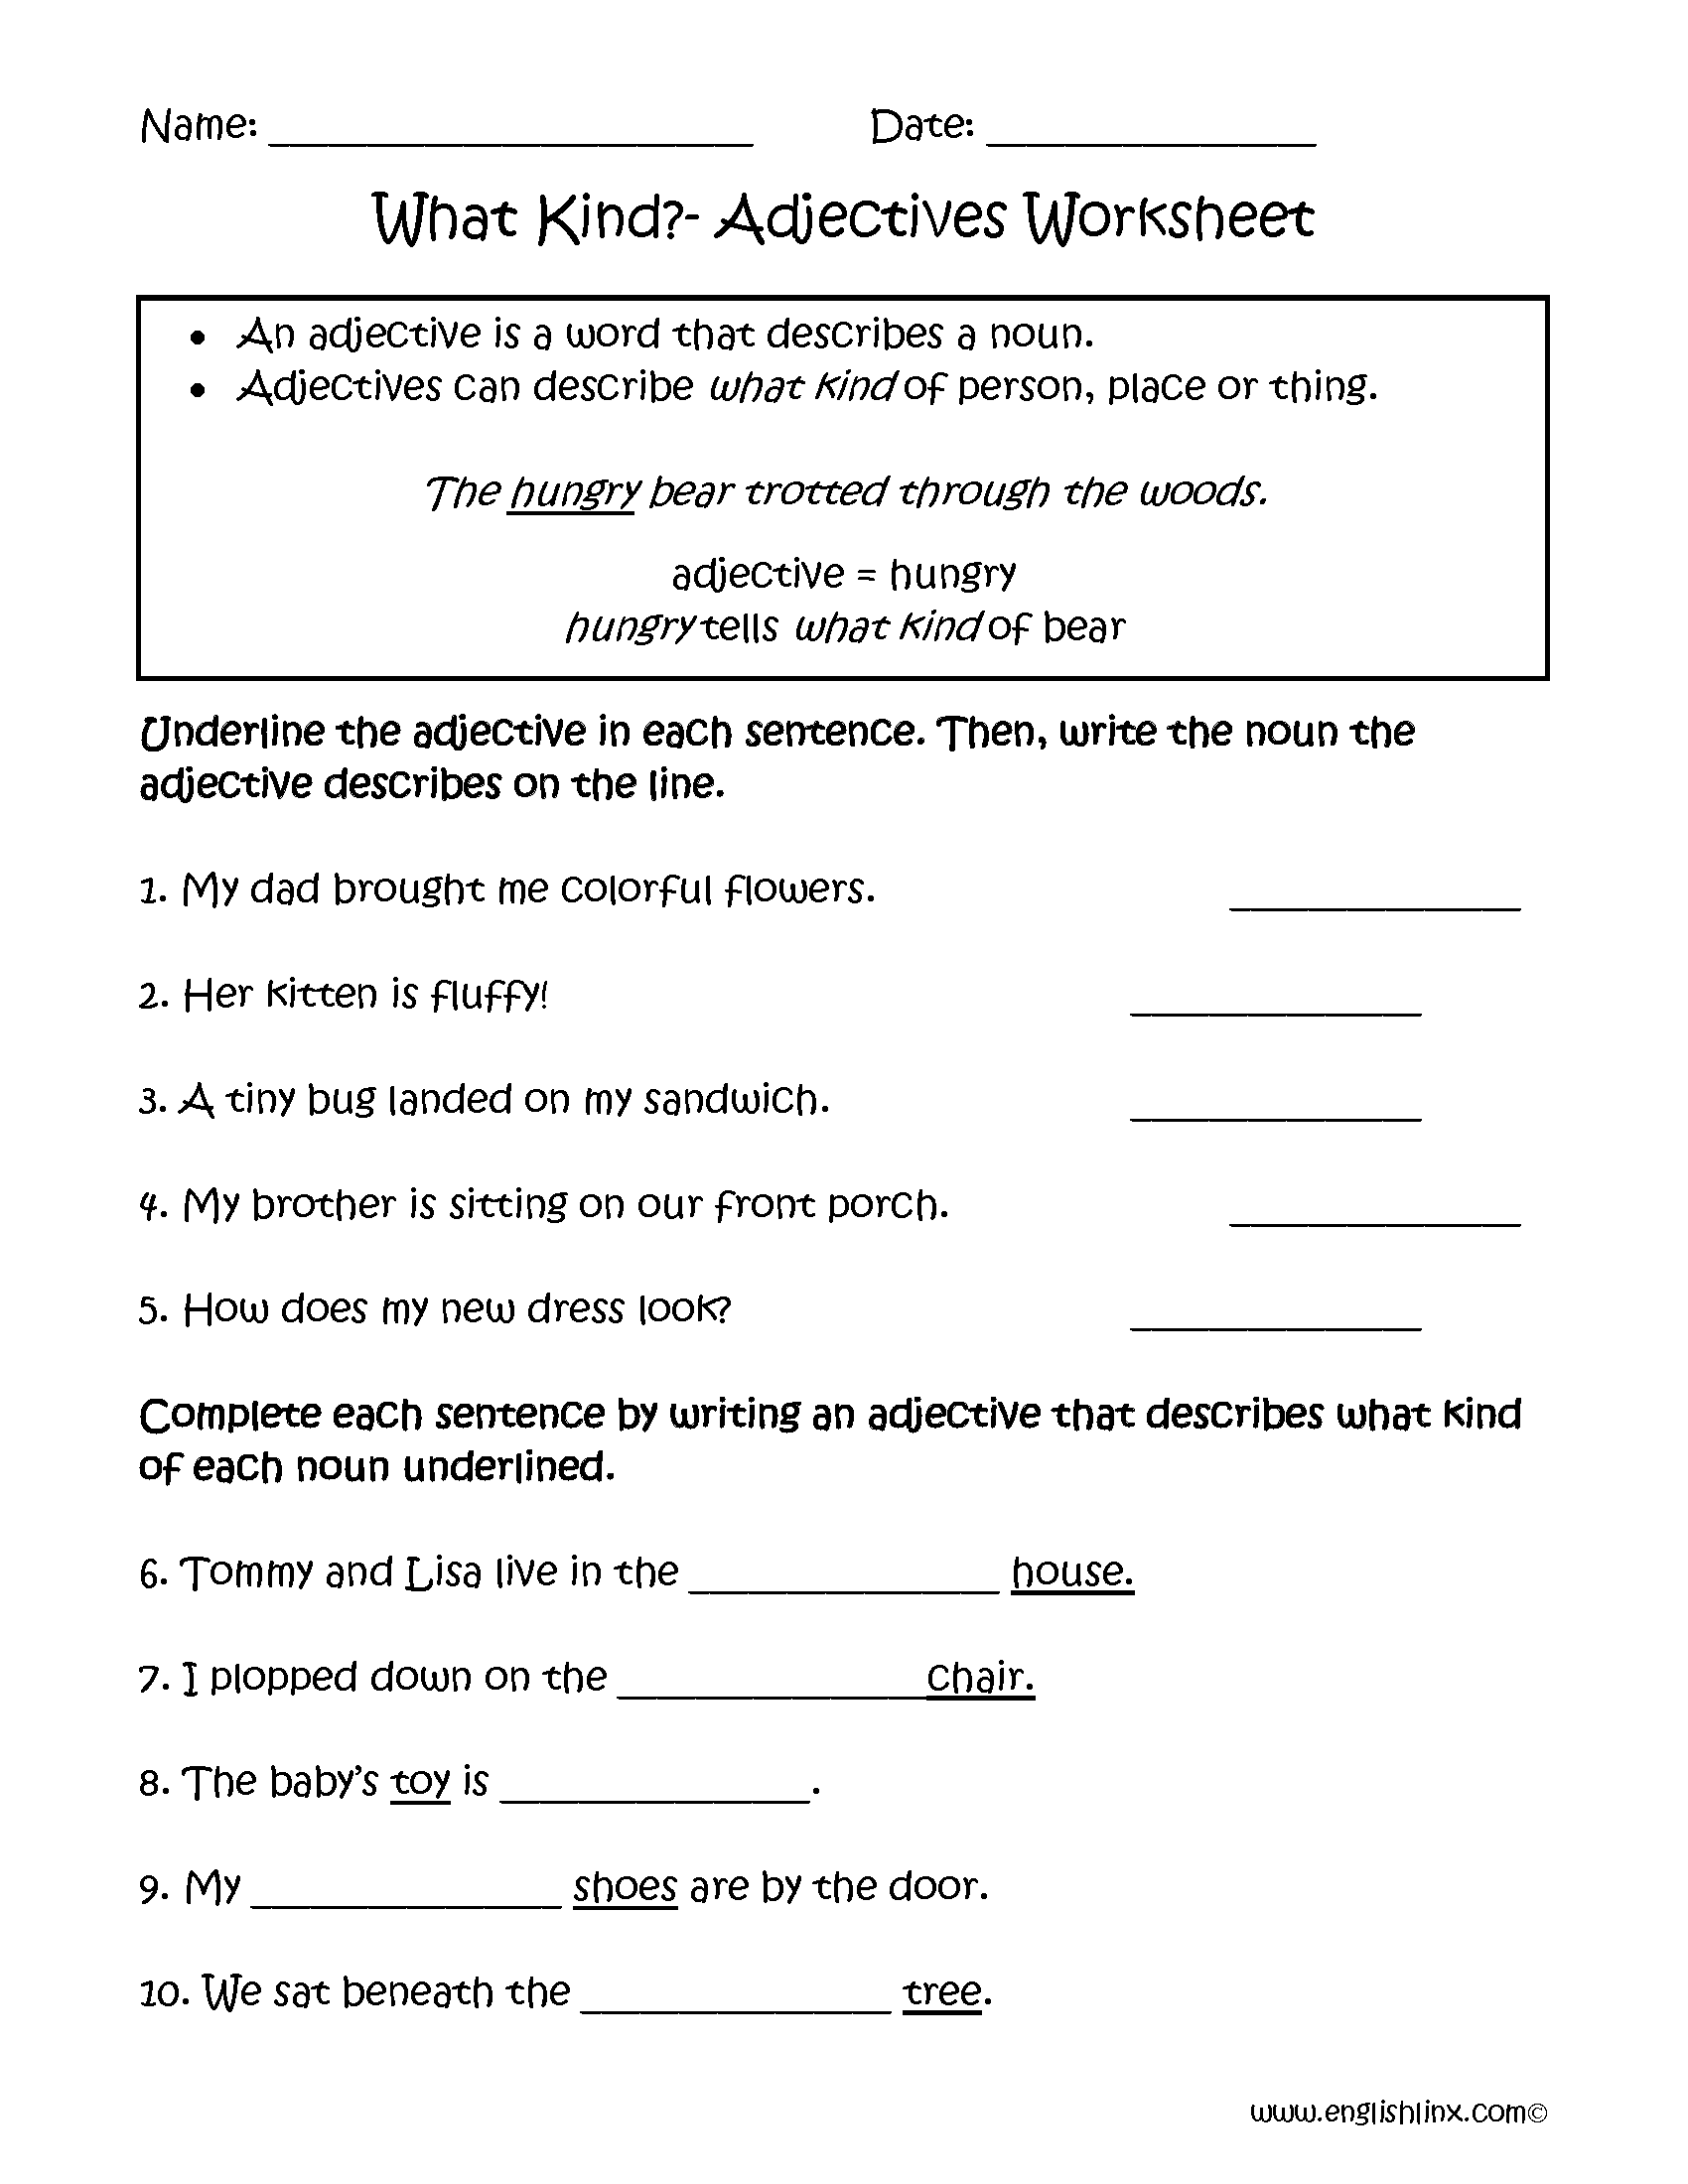 Worksheet Easy Adjective Worksheets adjectives worksheets regular worksheets